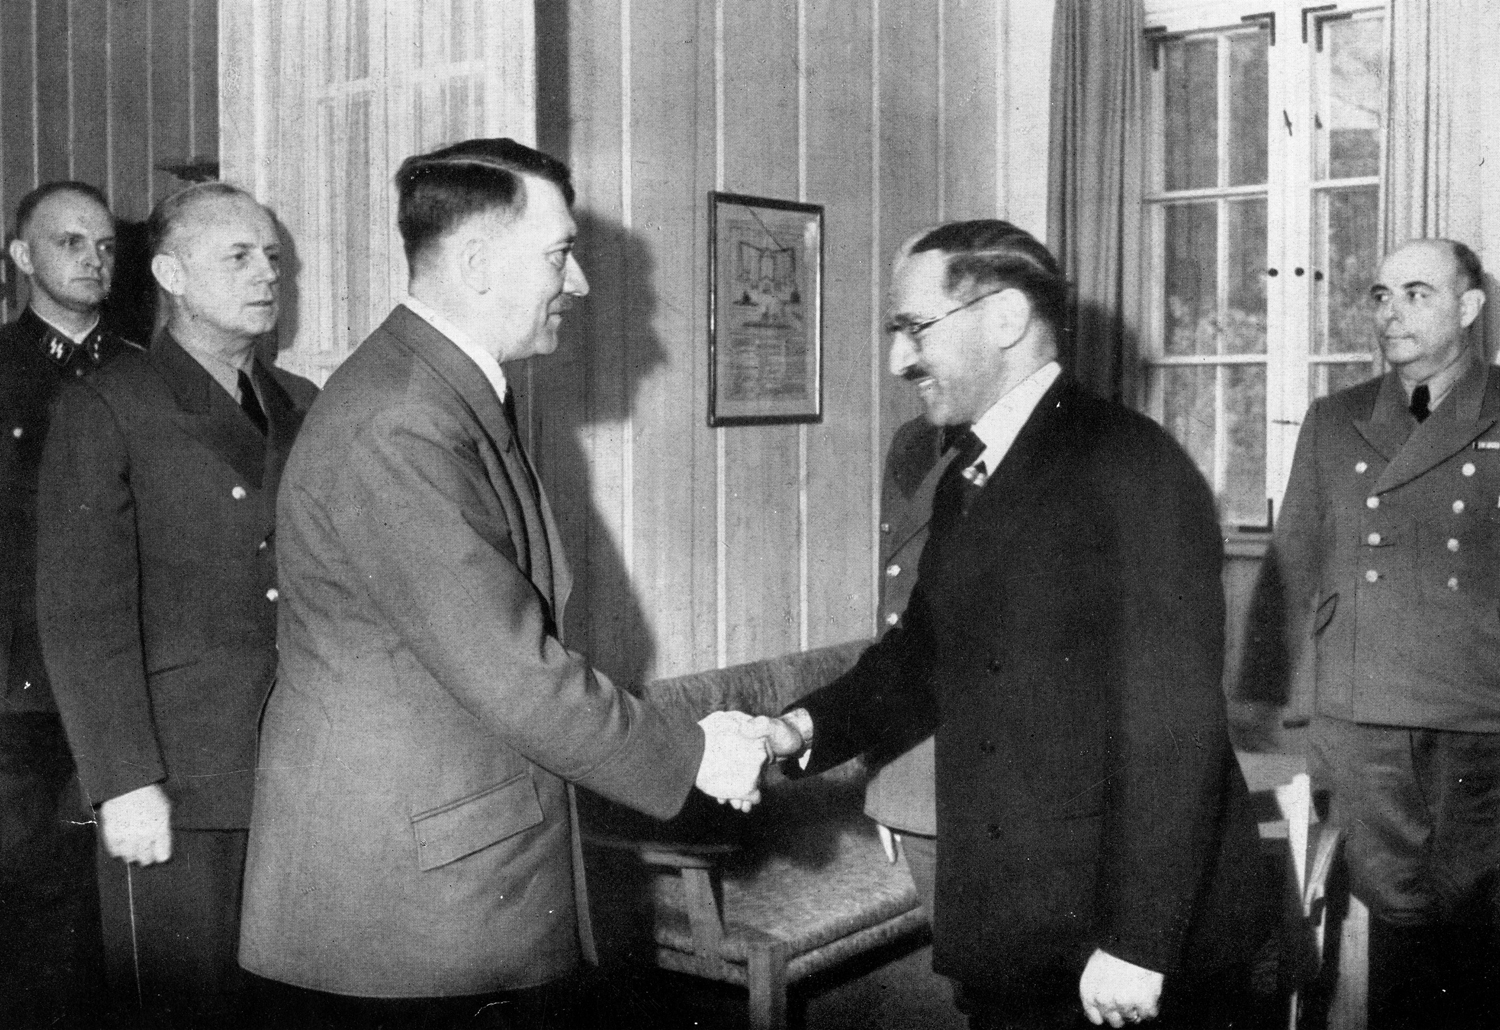 Adolf Hitler received Iraqui foreign affairs minister Rashid Ali al-Gaylani in Führerhauptquartier Werwolf